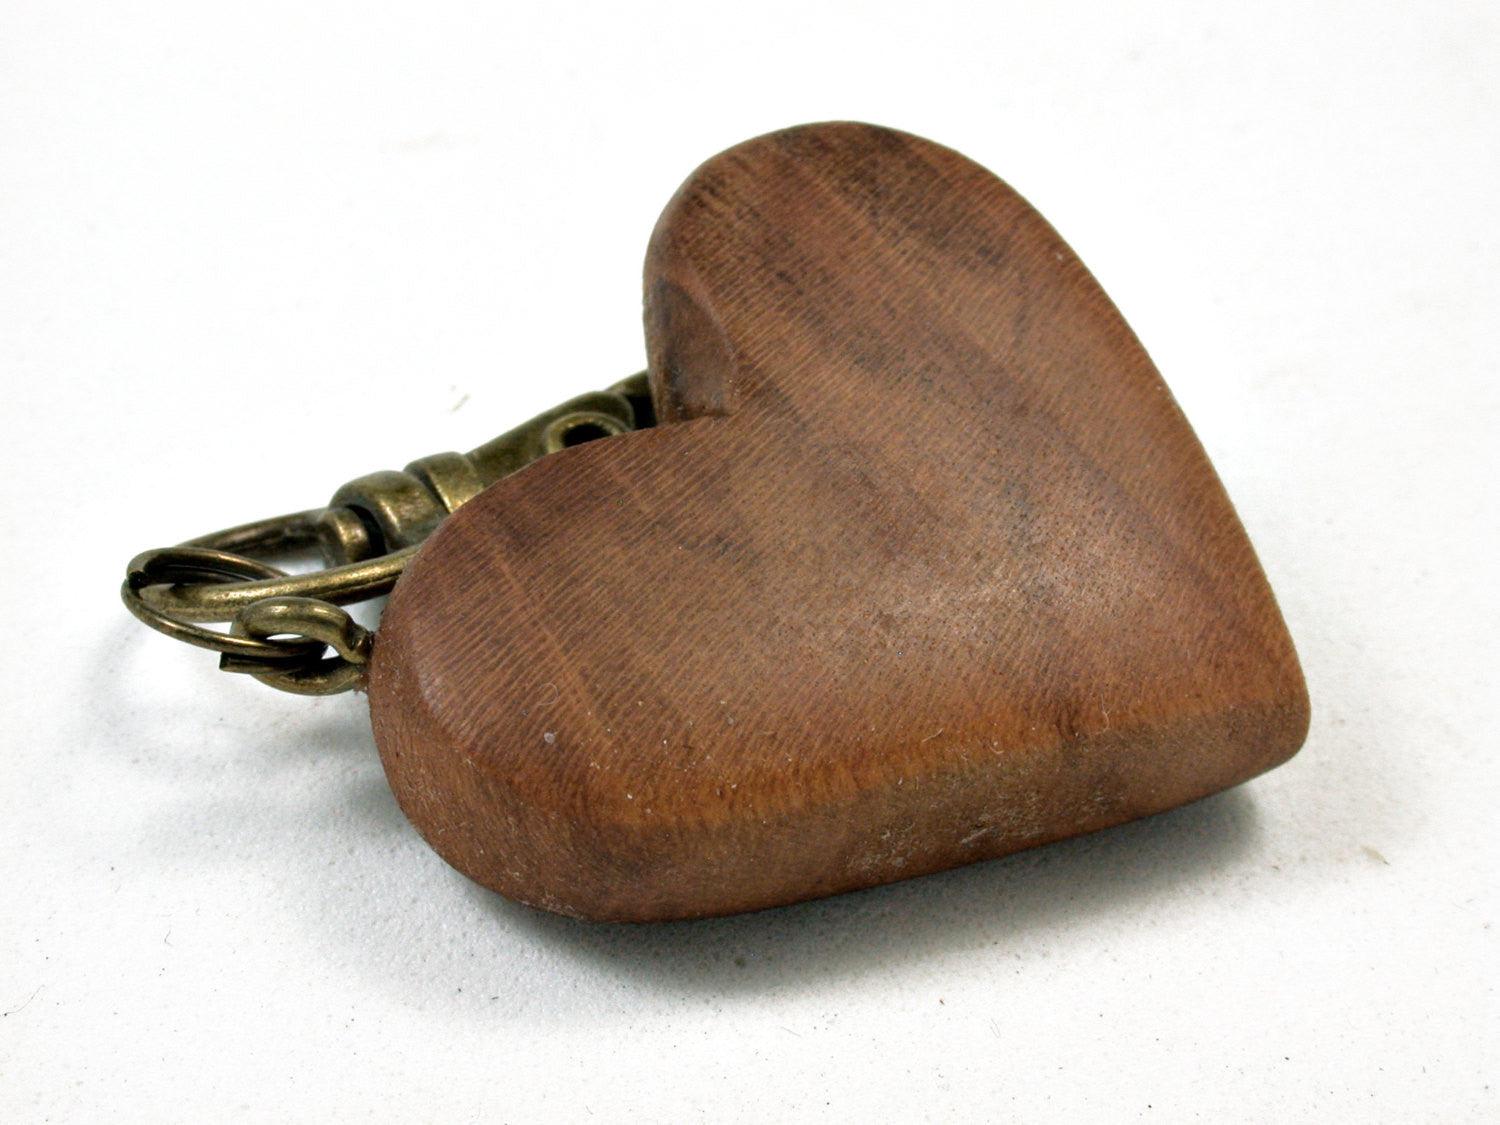 LV-1739 Yoshino Cherry Wooden Heart Shaped Charm, Keychain, Wedding Favor-HAND CARVED